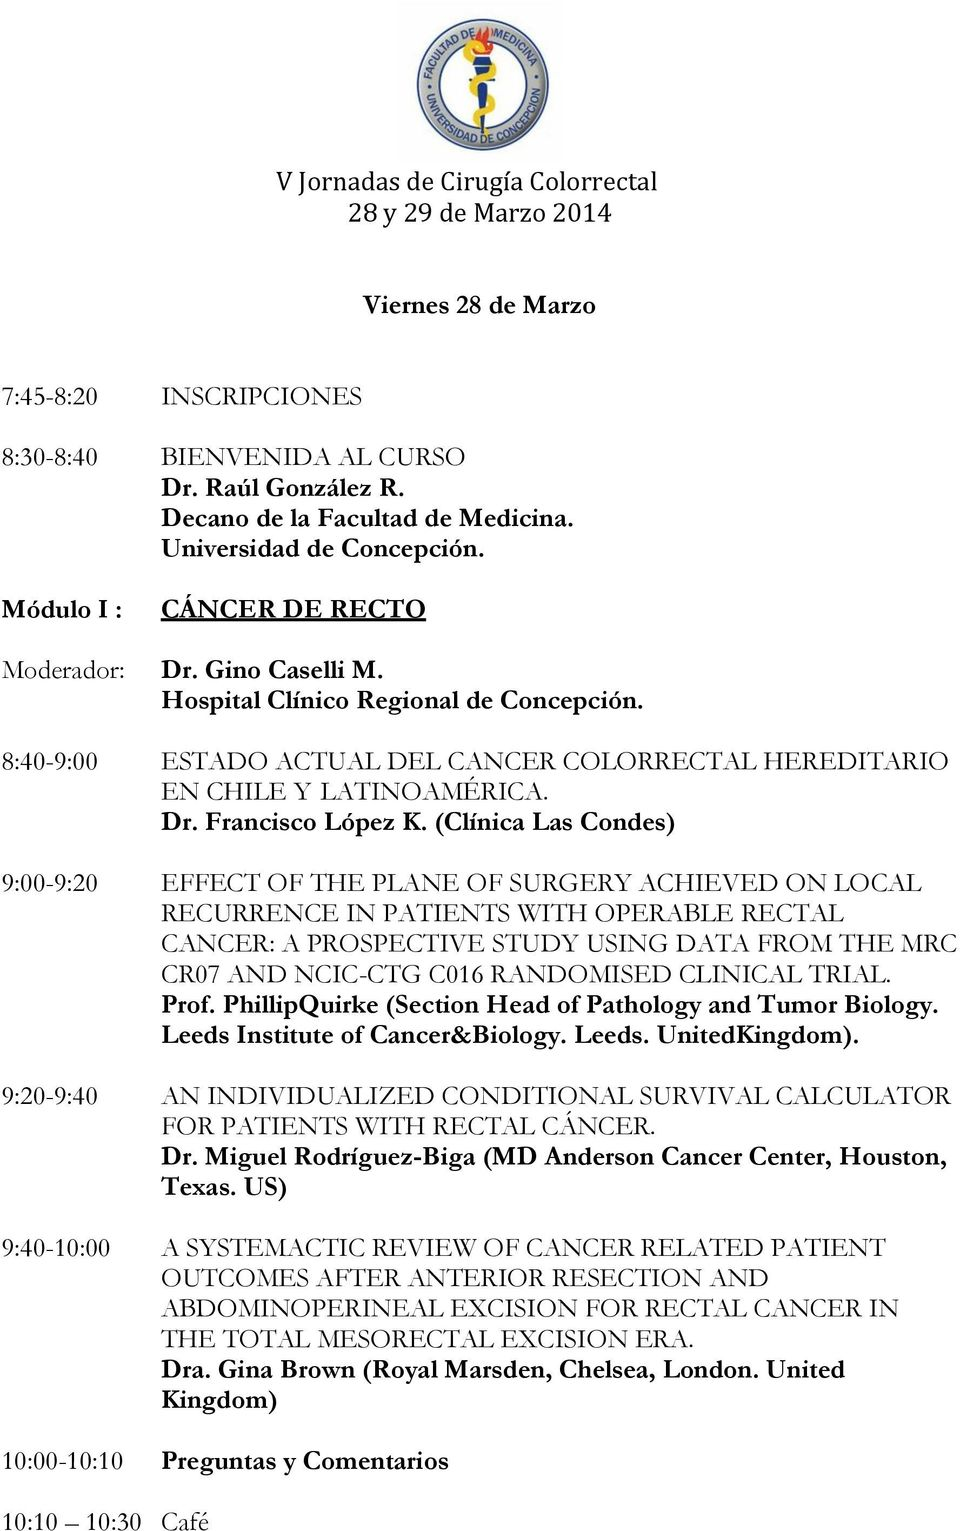 (Clínica Las Condes) 9:00-9:20 EFFECT OF THE PLANE OF SURGERY ACHIEVED ON LOCAL RECURRENCE IN PATIENTS WITH OPERABLE RECTAL CANCER: A PROSPECTIVE STUDY USING DATA FROM THE MRC CR07 AND NCIC-CTG C016